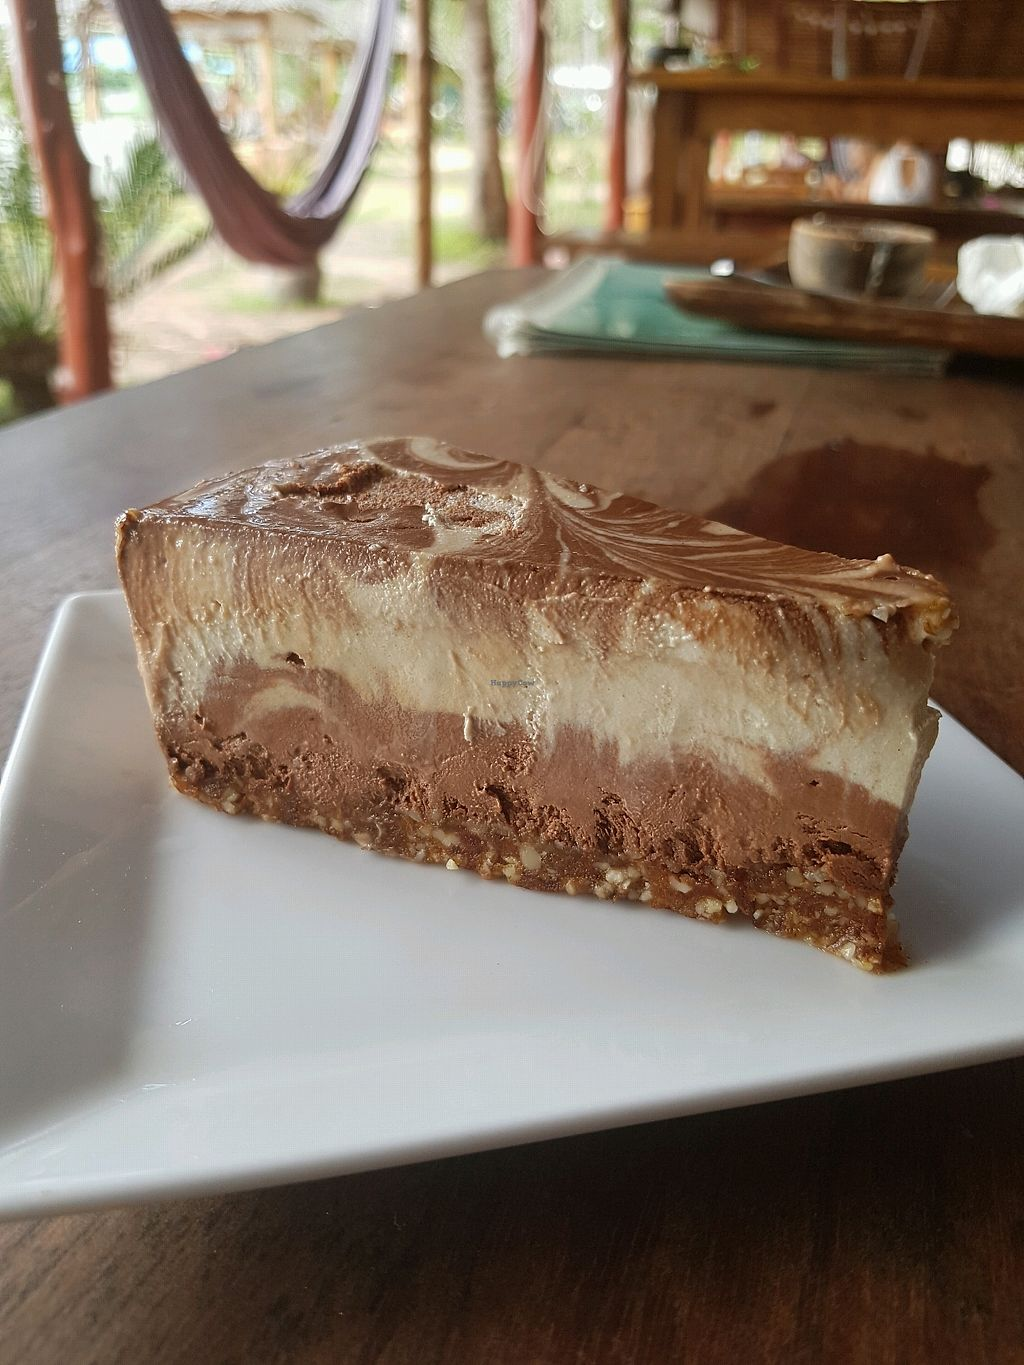 """Photo of Orion Cafe  by <a href=""""/members/profile/vegatleticas"""">vegatleticas</a> <br/>Banana and Chocolat Raw Cake <br/> March 9, 2018  - <a href='/contact/abuse/image/36552/368373'>Report</a>"""